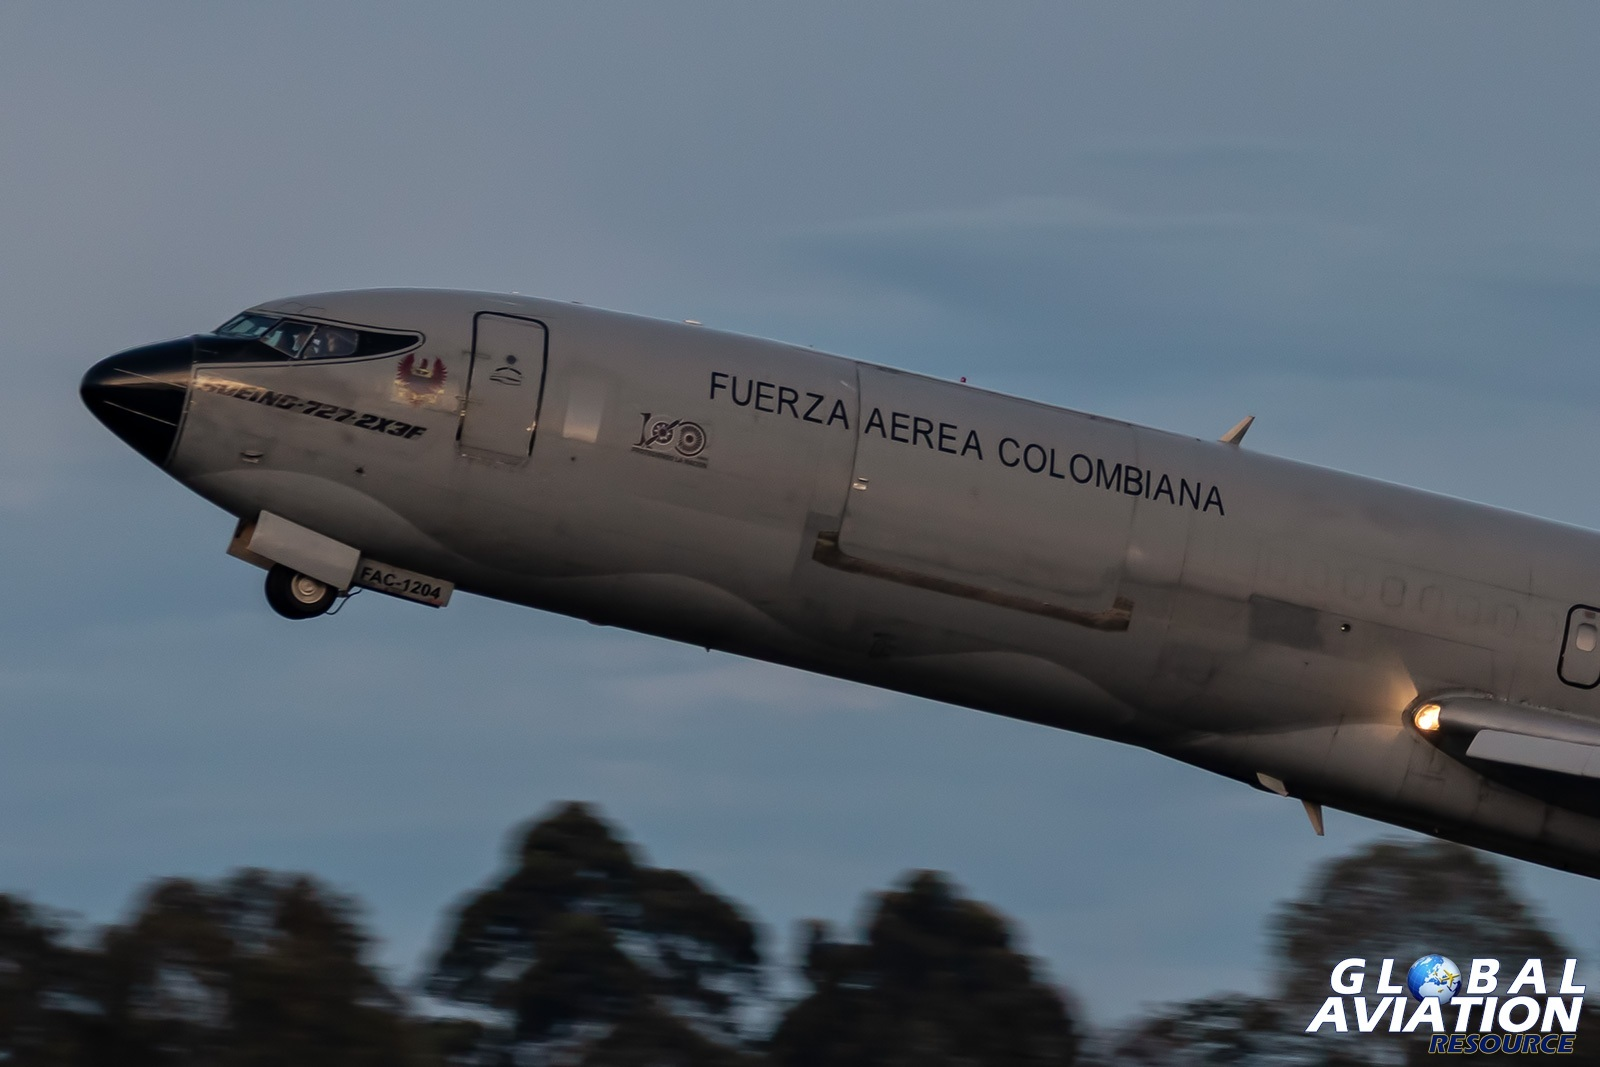 Colombian Air Force Boeing 727-200F - © Paul Filmer, Global Aviation Resource